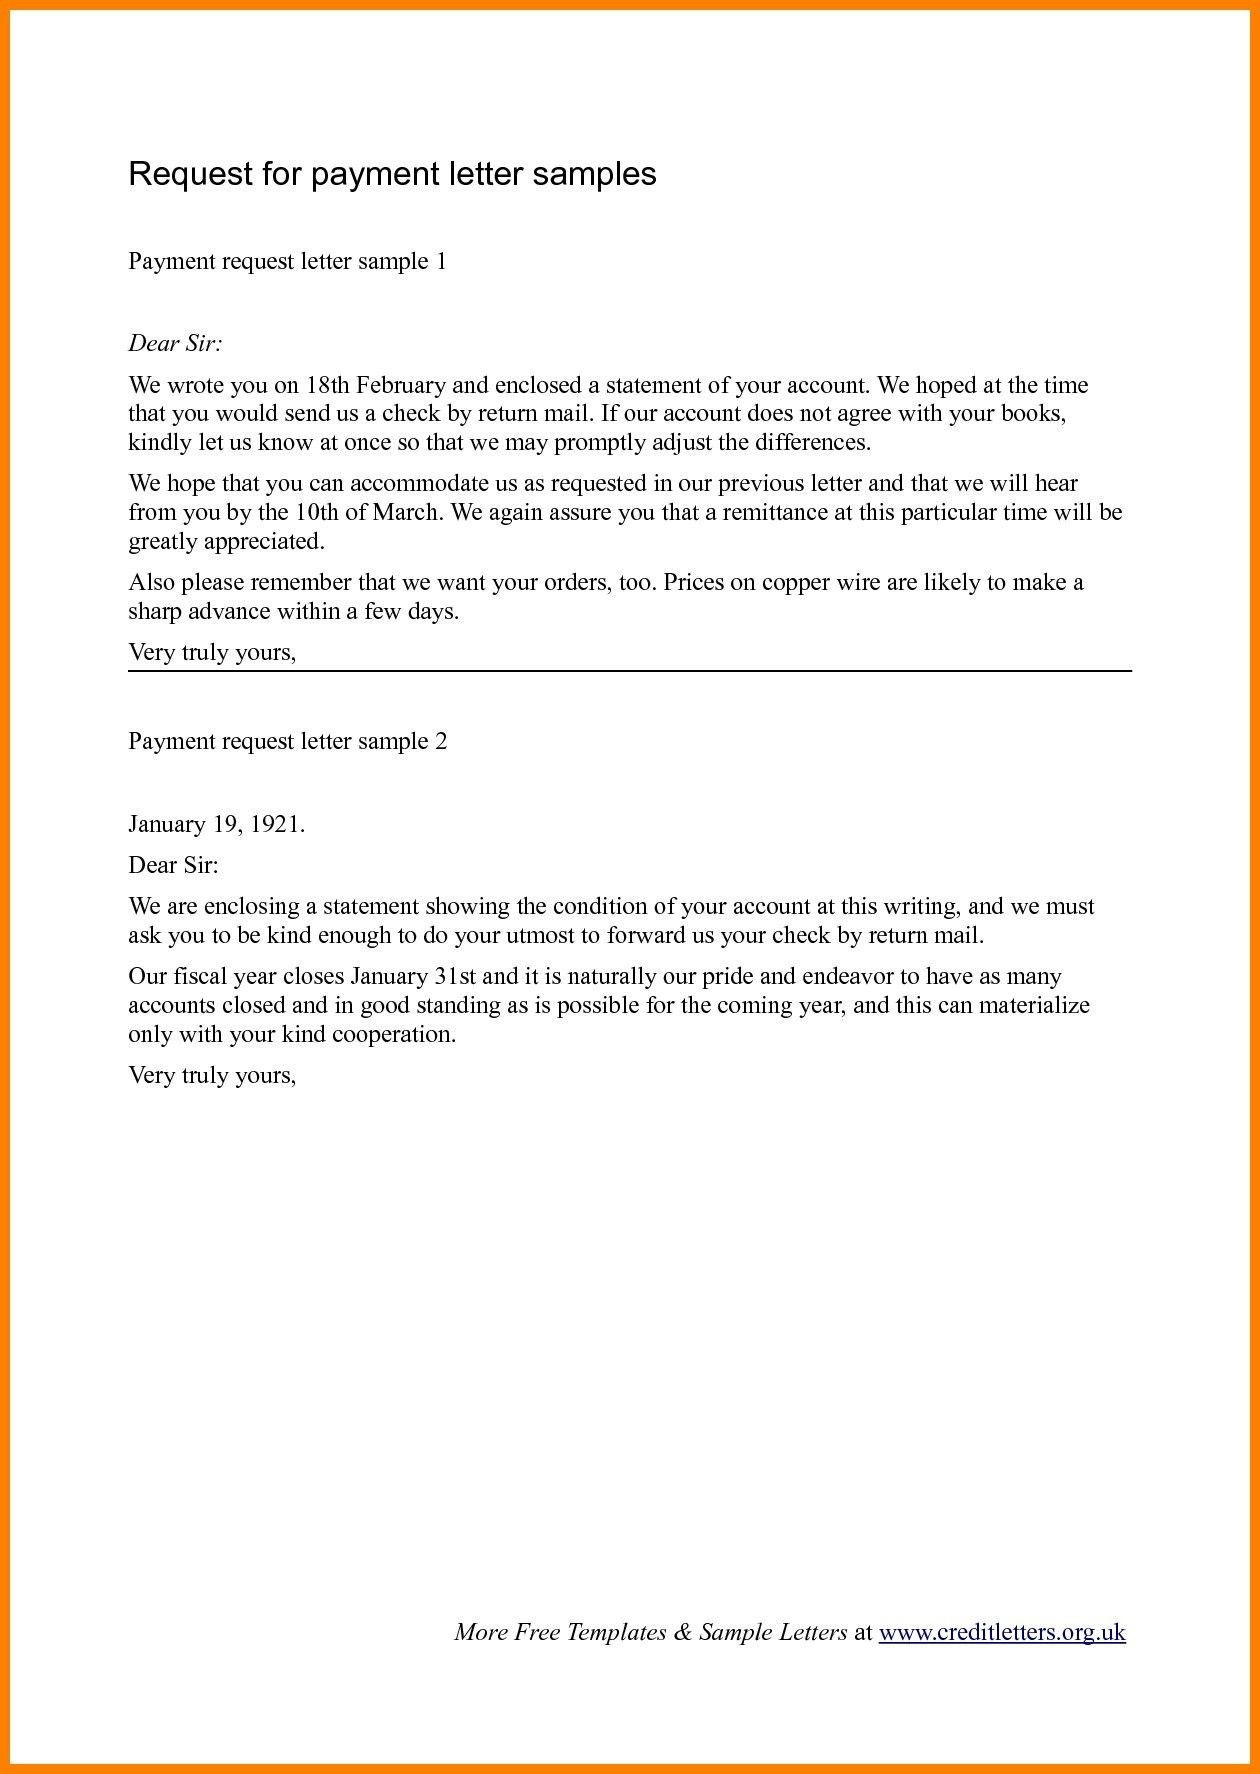 You Can See This Valid Letter Format For Material Request At Valid In Material Letters Template